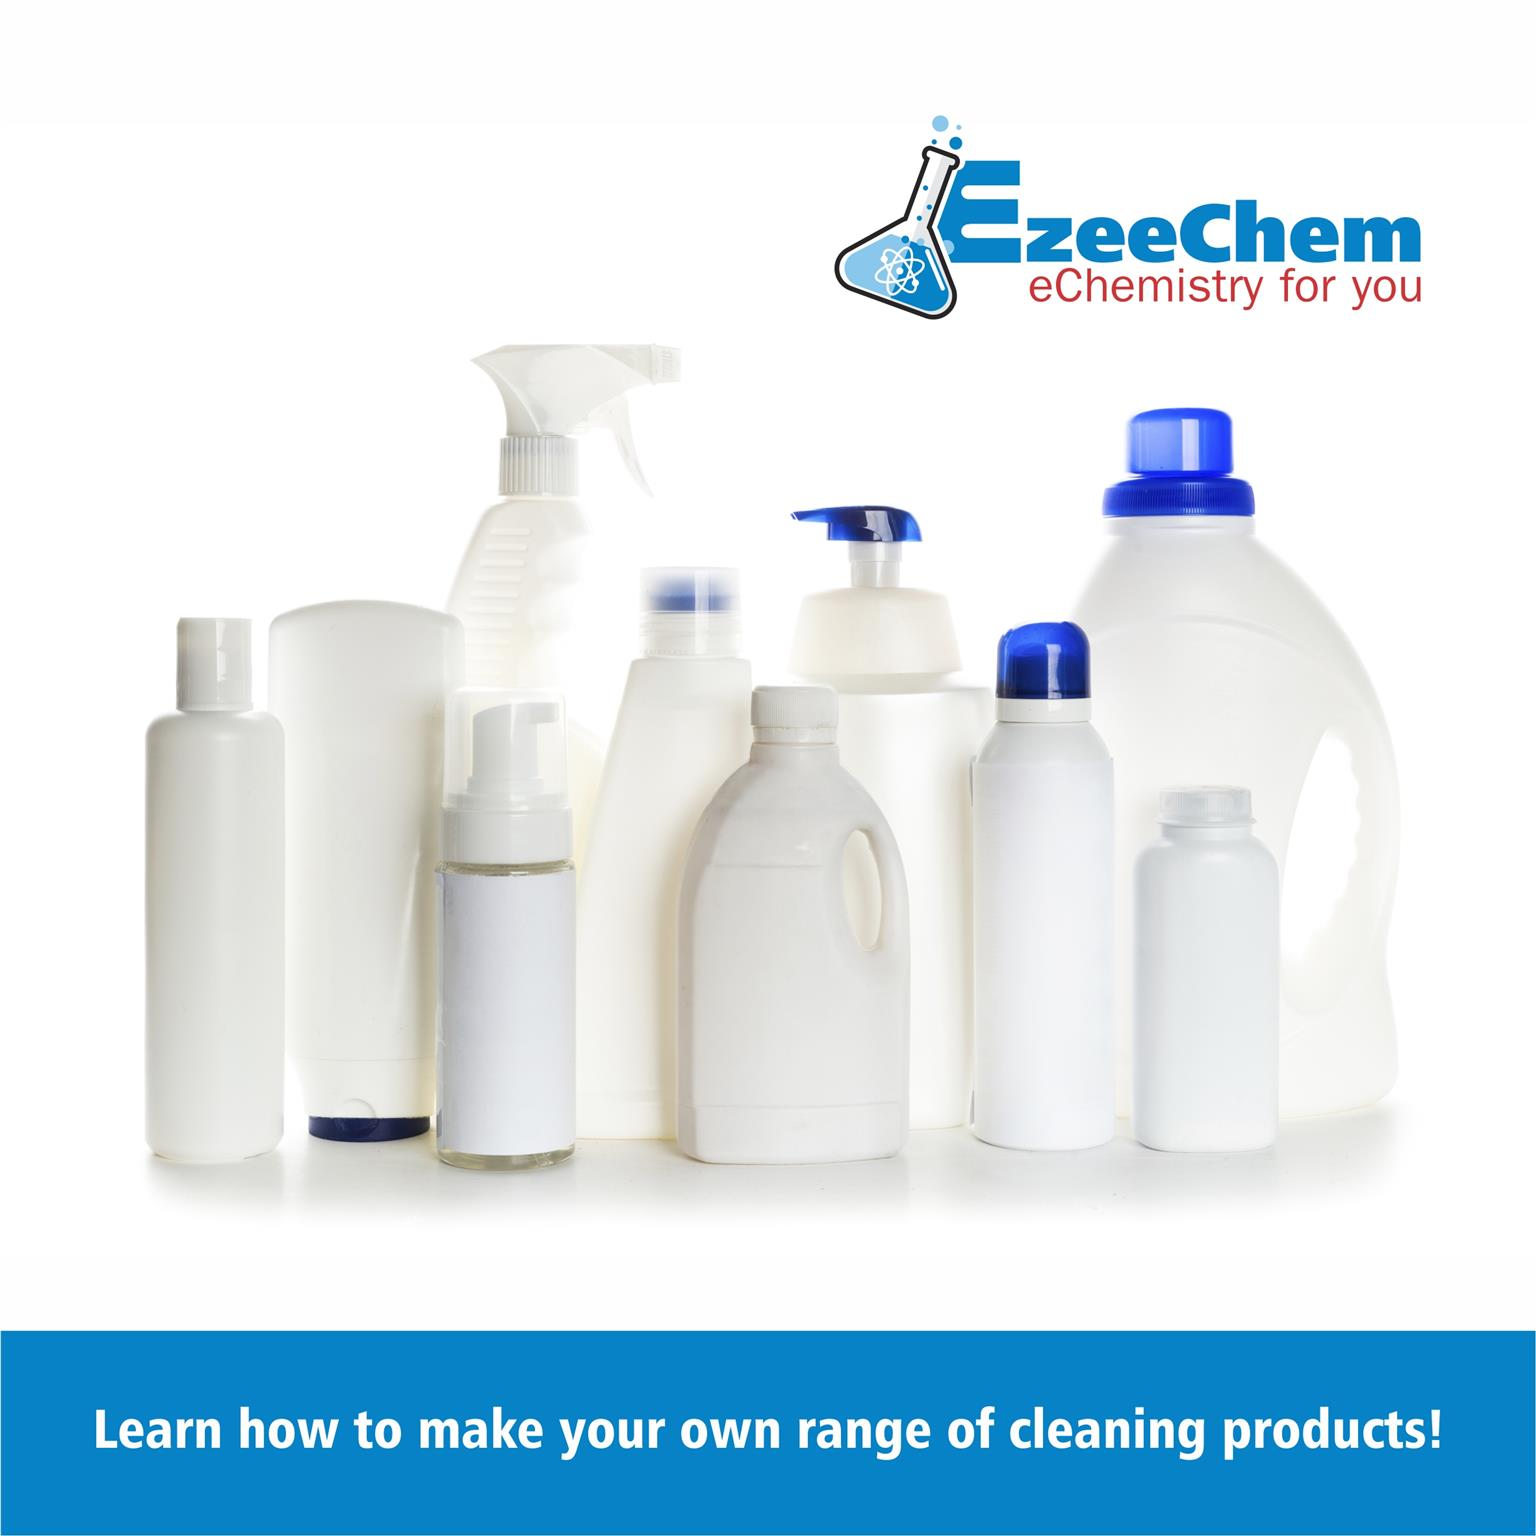 Learn how to make your own cleaning products - extra income